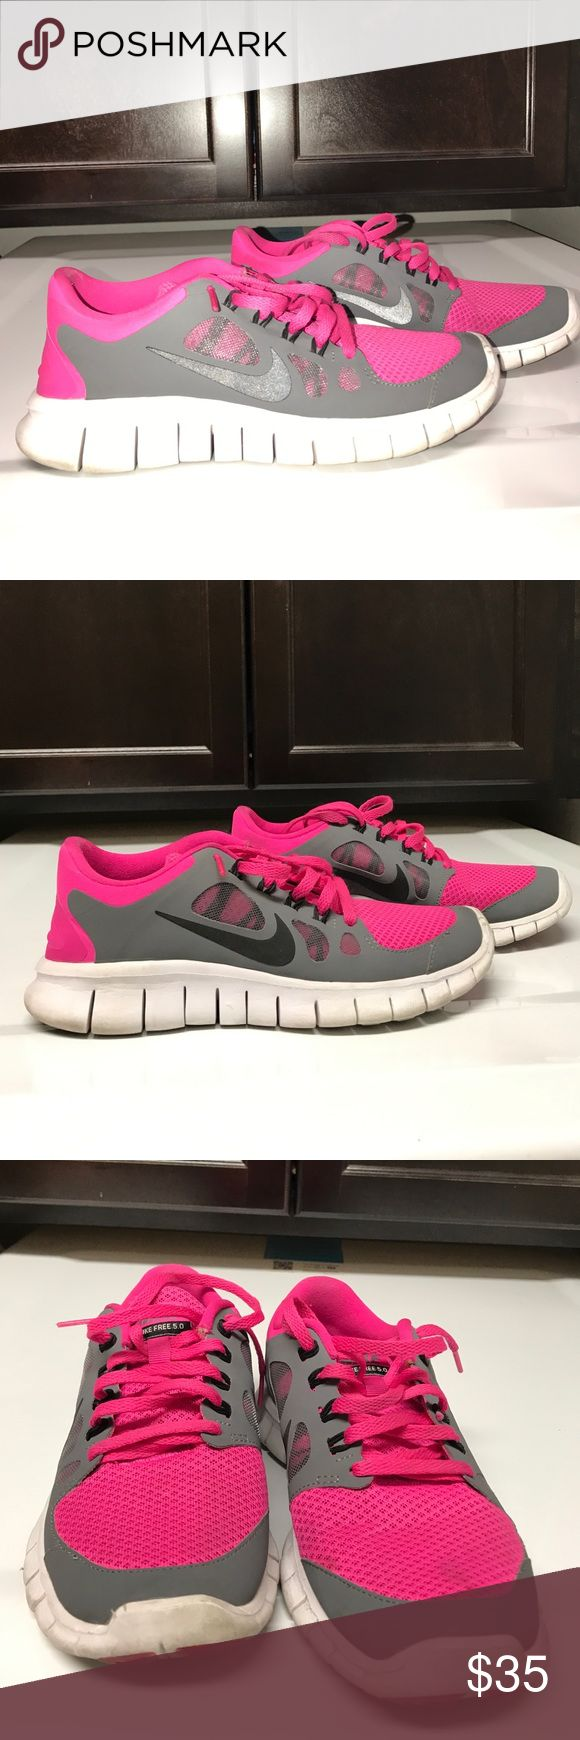 Girl Nike free runner sneakers